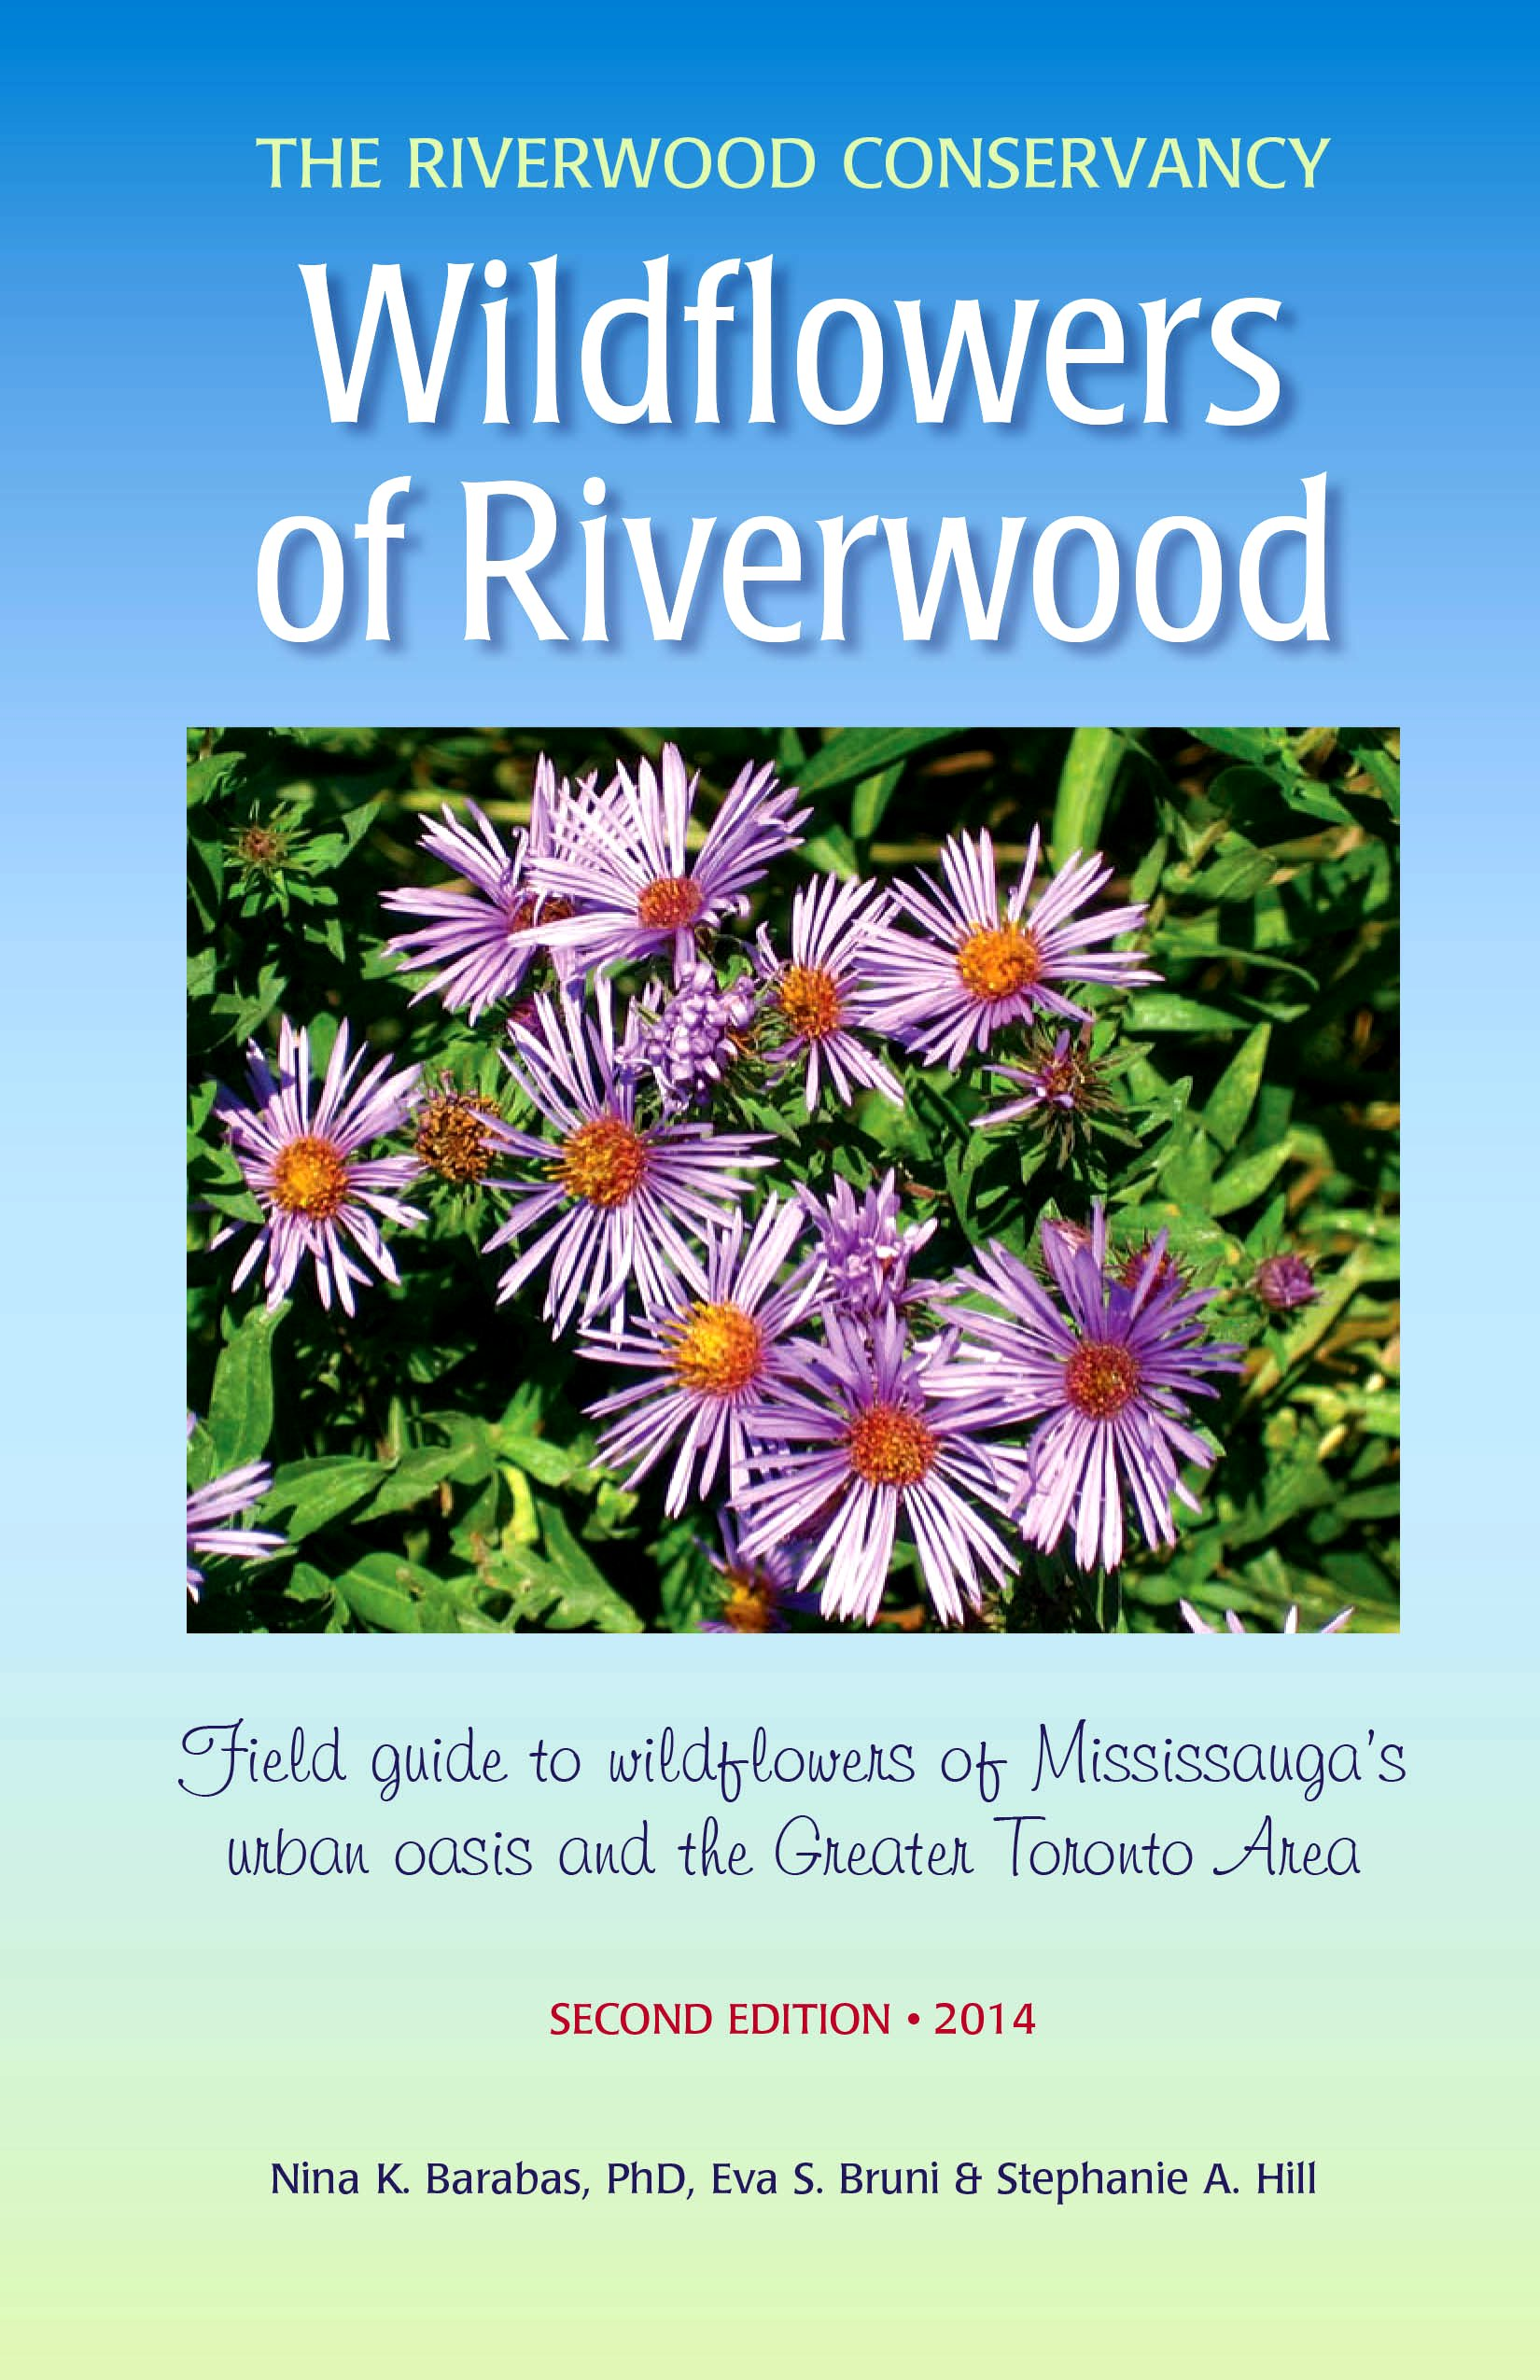 Wildflowers of Riverwood, Field Guide to Wildflowers of Mississauga's Garden Park and the Greater Toronto Area by Co-authors: Nina Katalin Barabas, PhD, Eva Sabrina Bruni and Stephanie-Ann Hill. Google image from http://www.theriverwoodconservancy.org/index.php/online-shop/product/13-wildflowers-of-riverwood